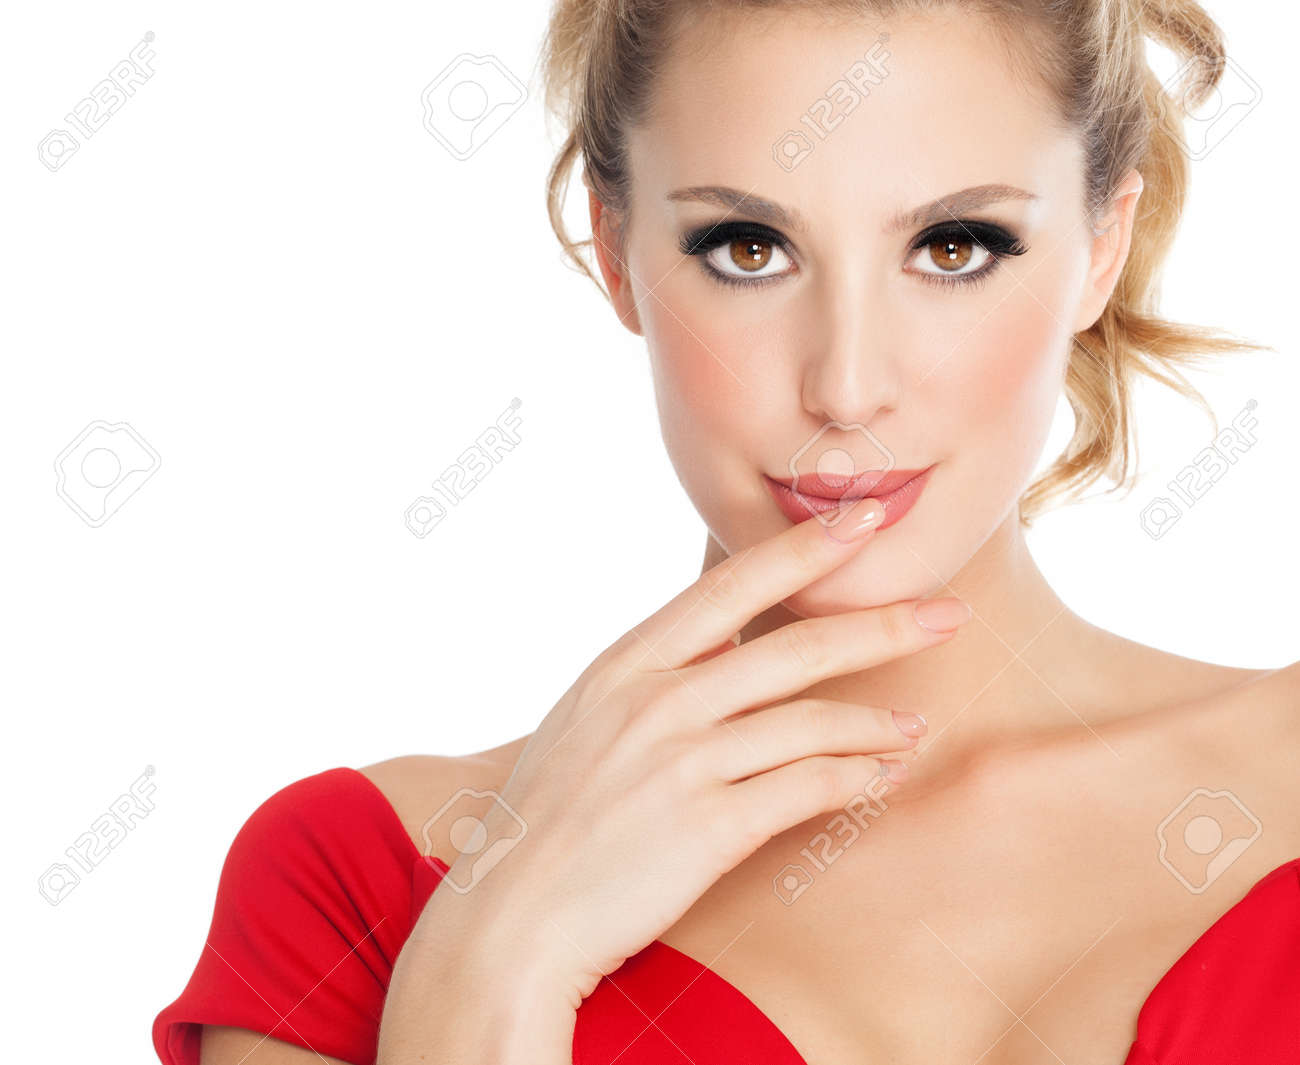 Beautiful Woman With Red Lipstick Wearing Red Dress Over White ...